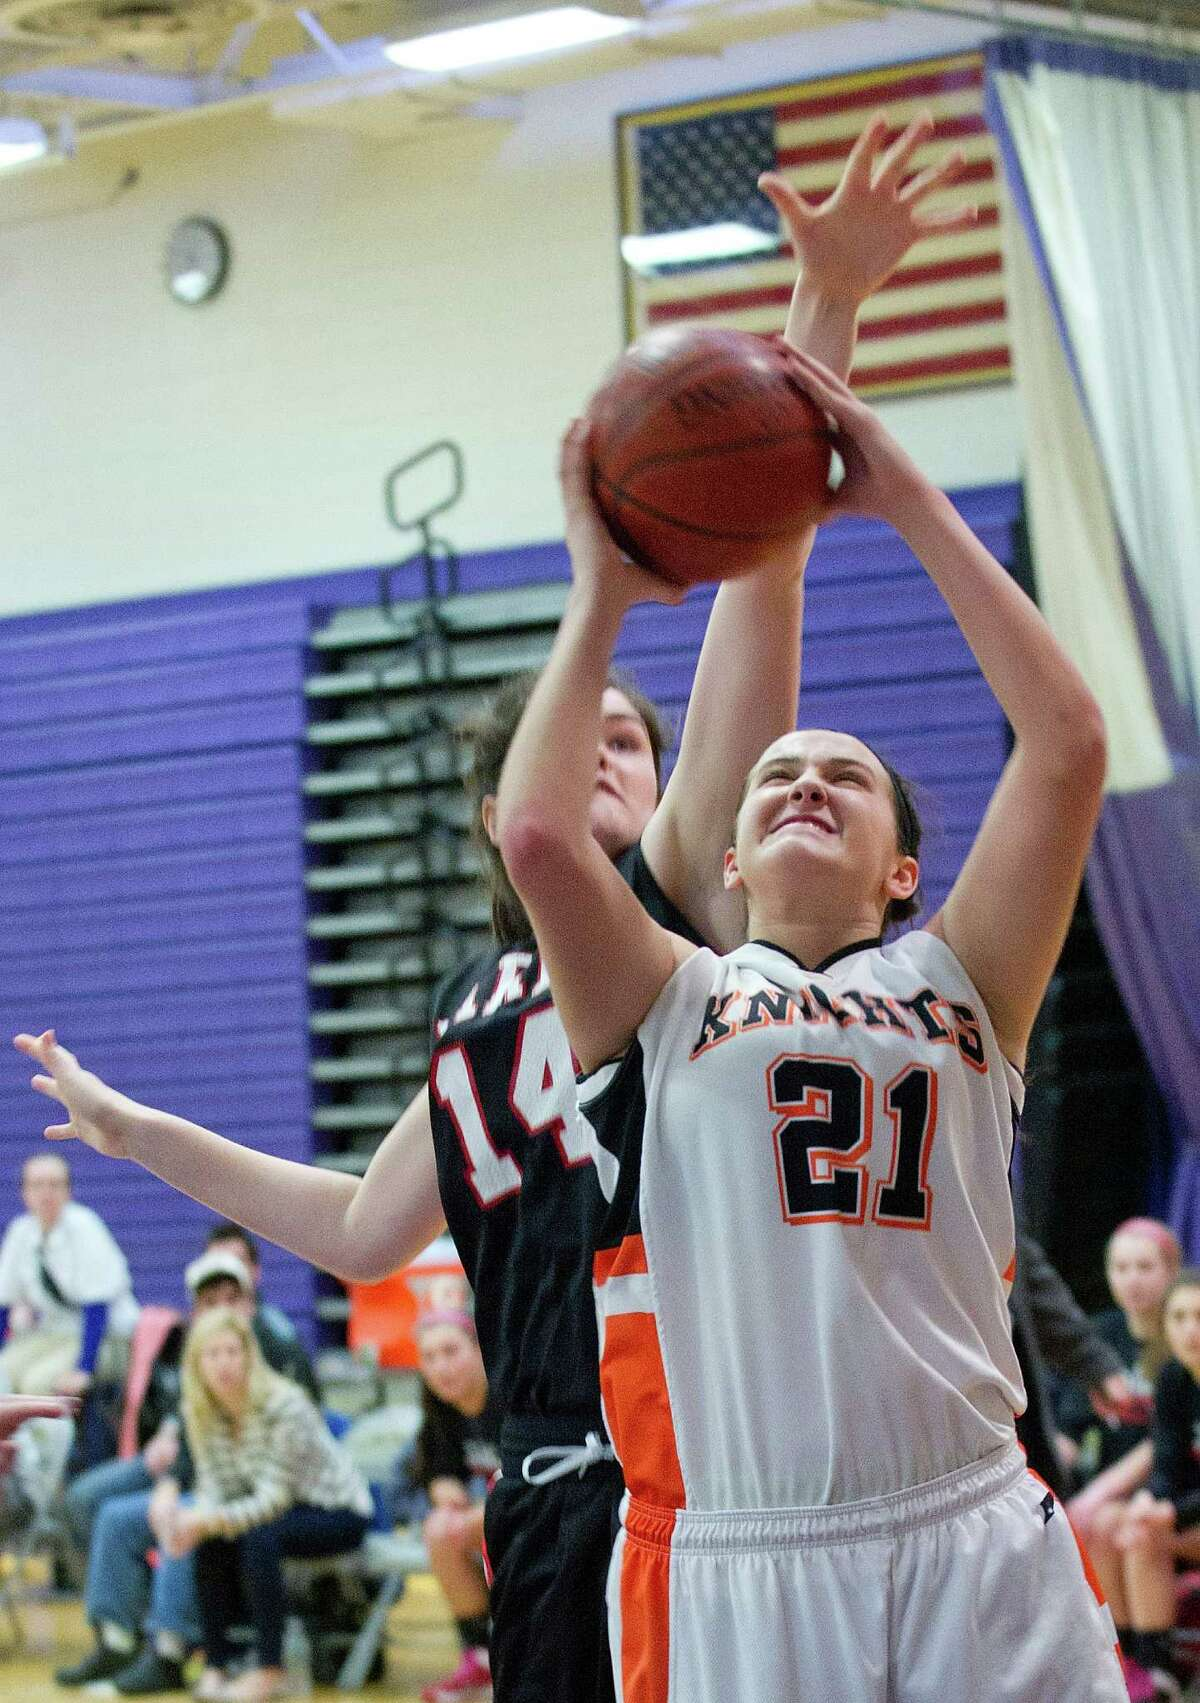 Stamford's Kelsey Santagata puts up a shot during Saturday's FCIAC girls basketball quarterfinal game against Fairfield Warde at Westhill High School on February 22, 2014.